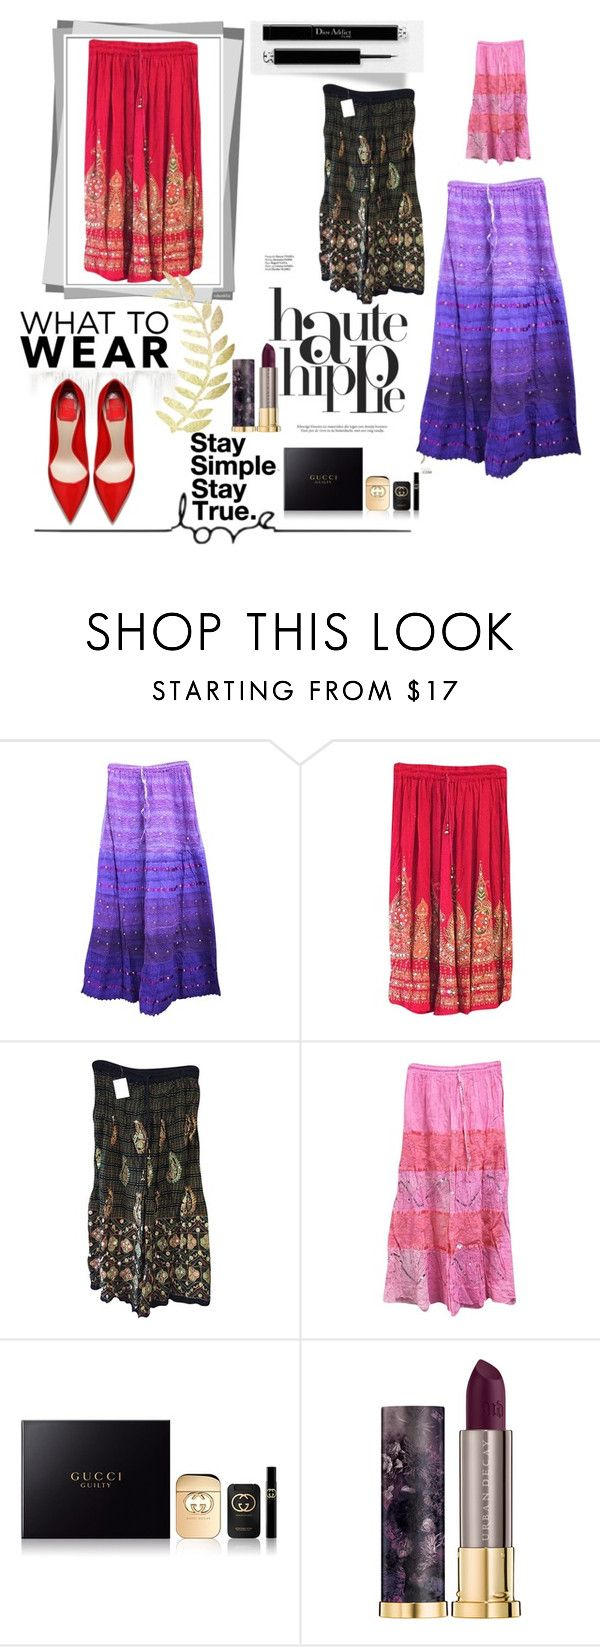 """""""Womens Festive Skirt"""" by era-chandok ❤ liked on Polyvore featuring Haute Hippie, Gucci and Urban Decay"""